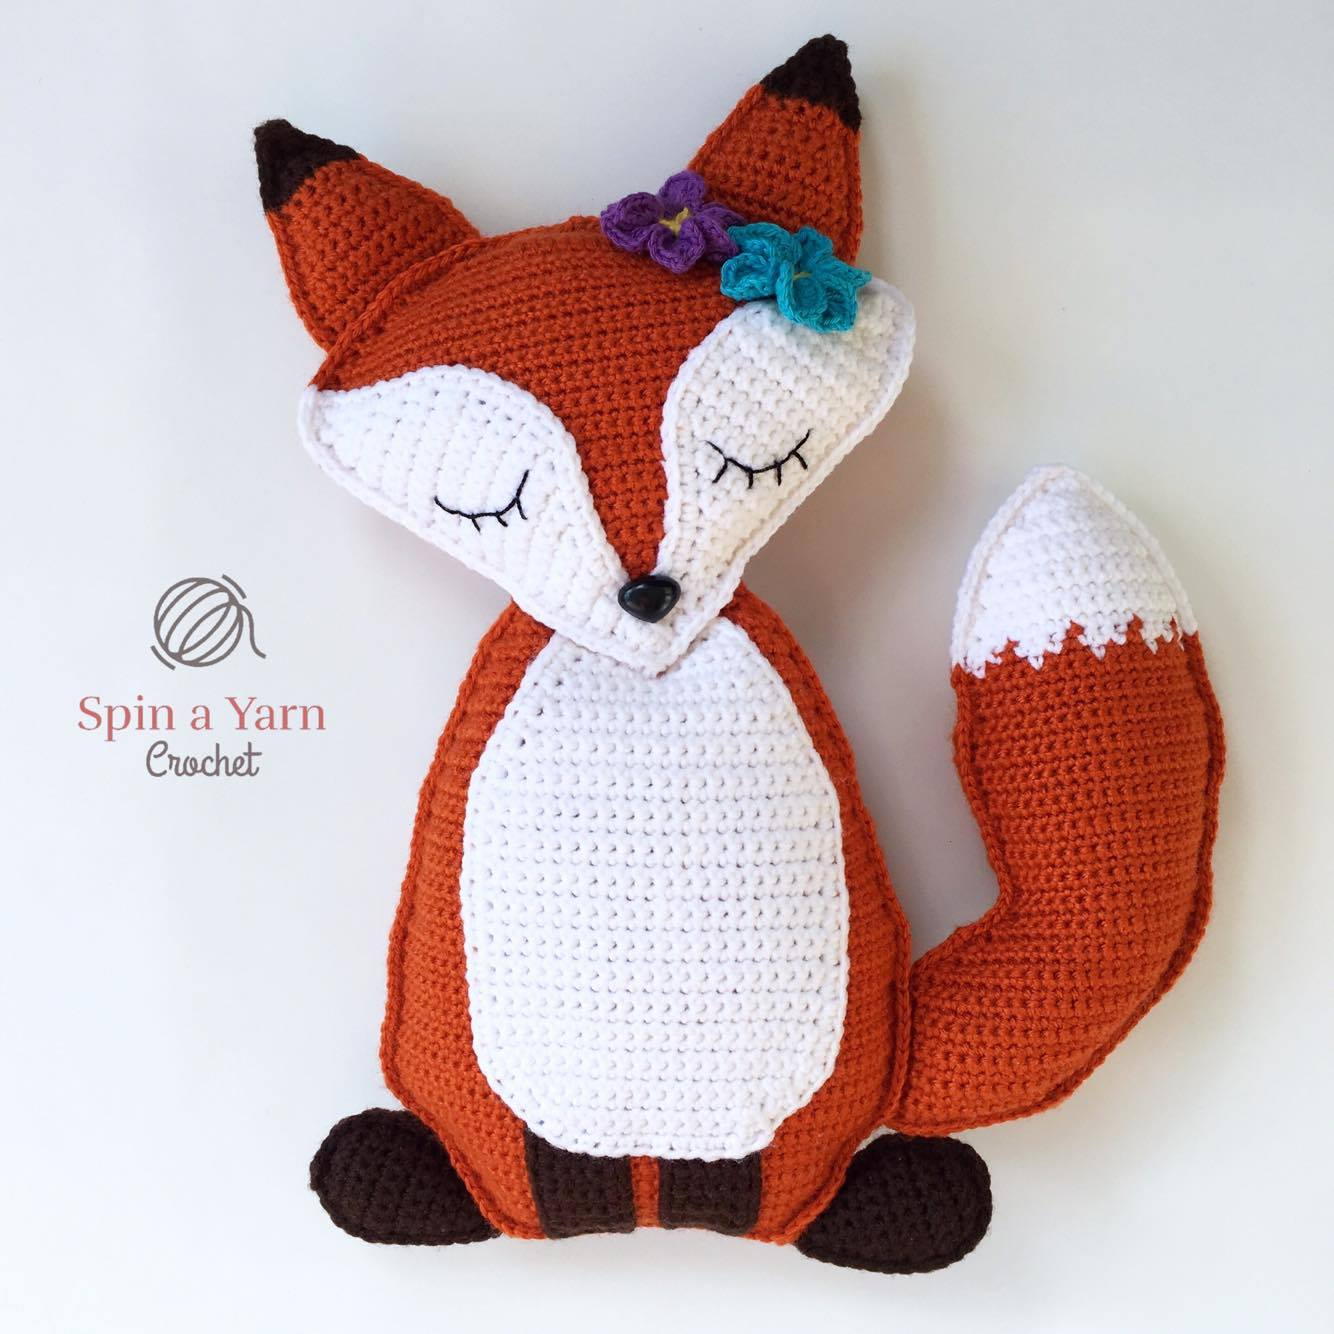 Red Fox Amigurumi Crochet | Craft Designs by Eve Leder | 1334x1334